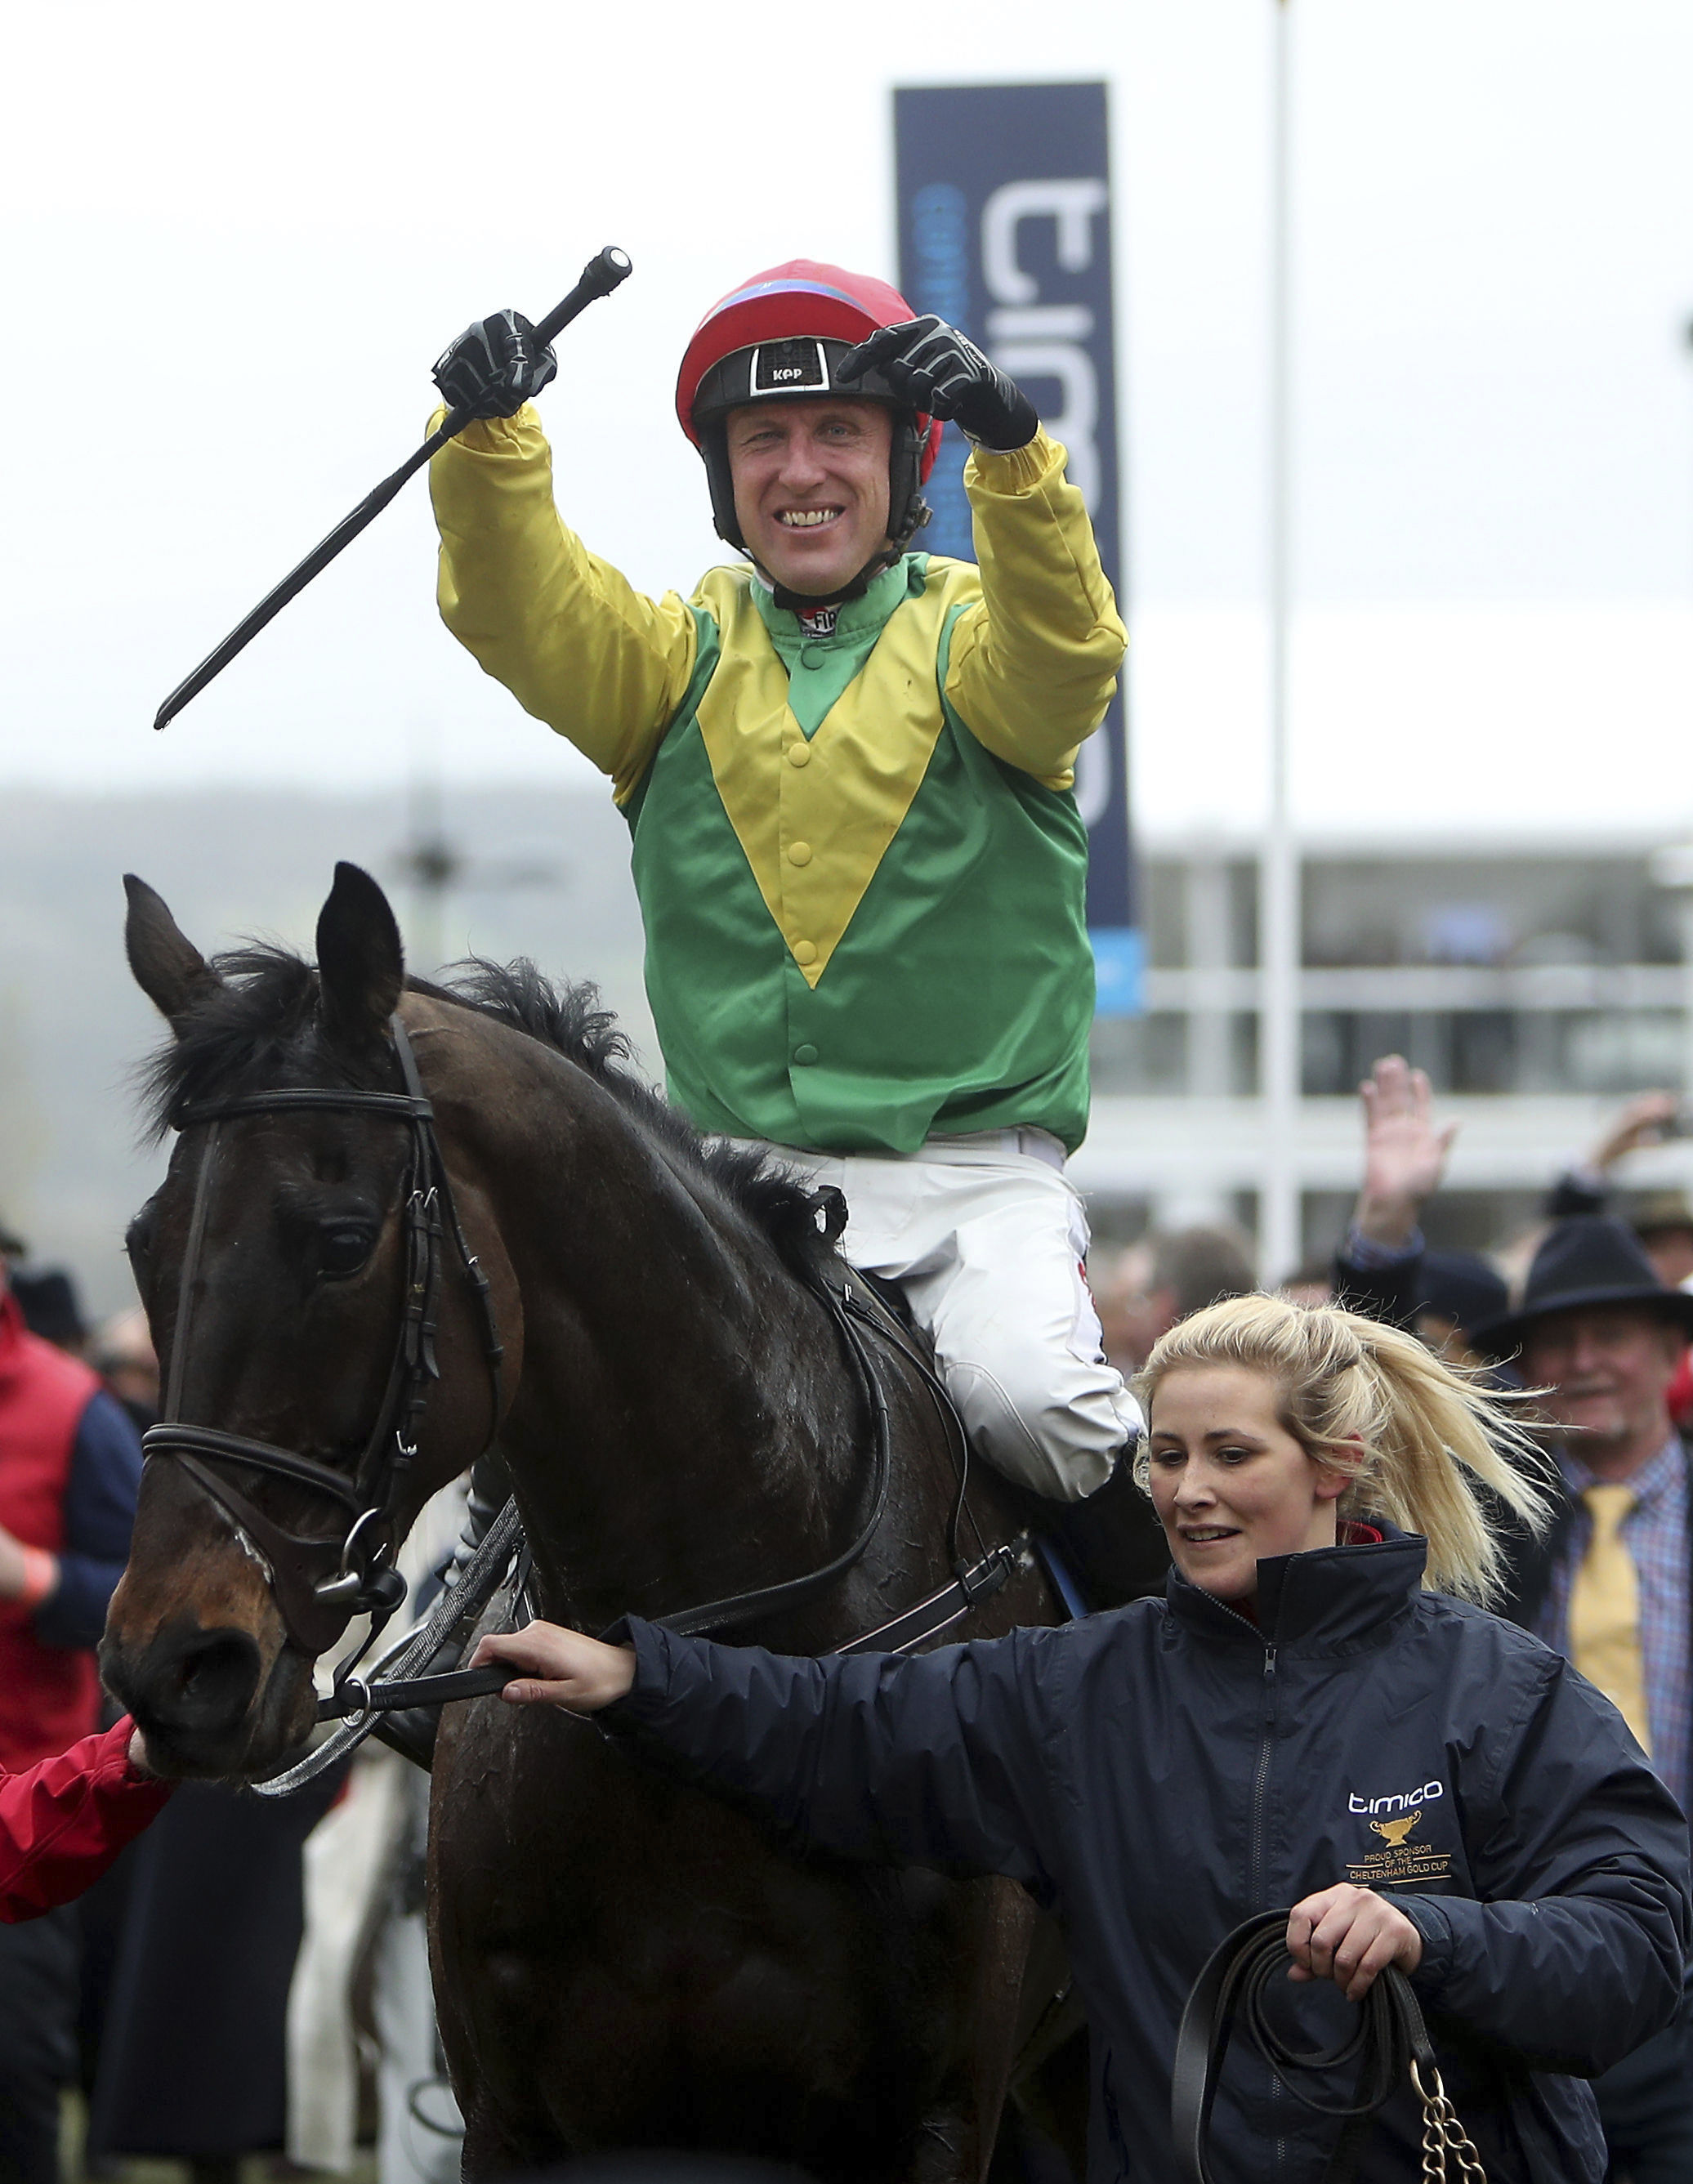 Jockey Robbie Power celebrates after his winning ride on Sizing John in the Cheltenham Gold Cup on the final day of the 2017 Cheltenham Festival at Cheltenham Racecourse Cheltenham England, Friday March 17, 2017. (David Davies/PA  via AP)